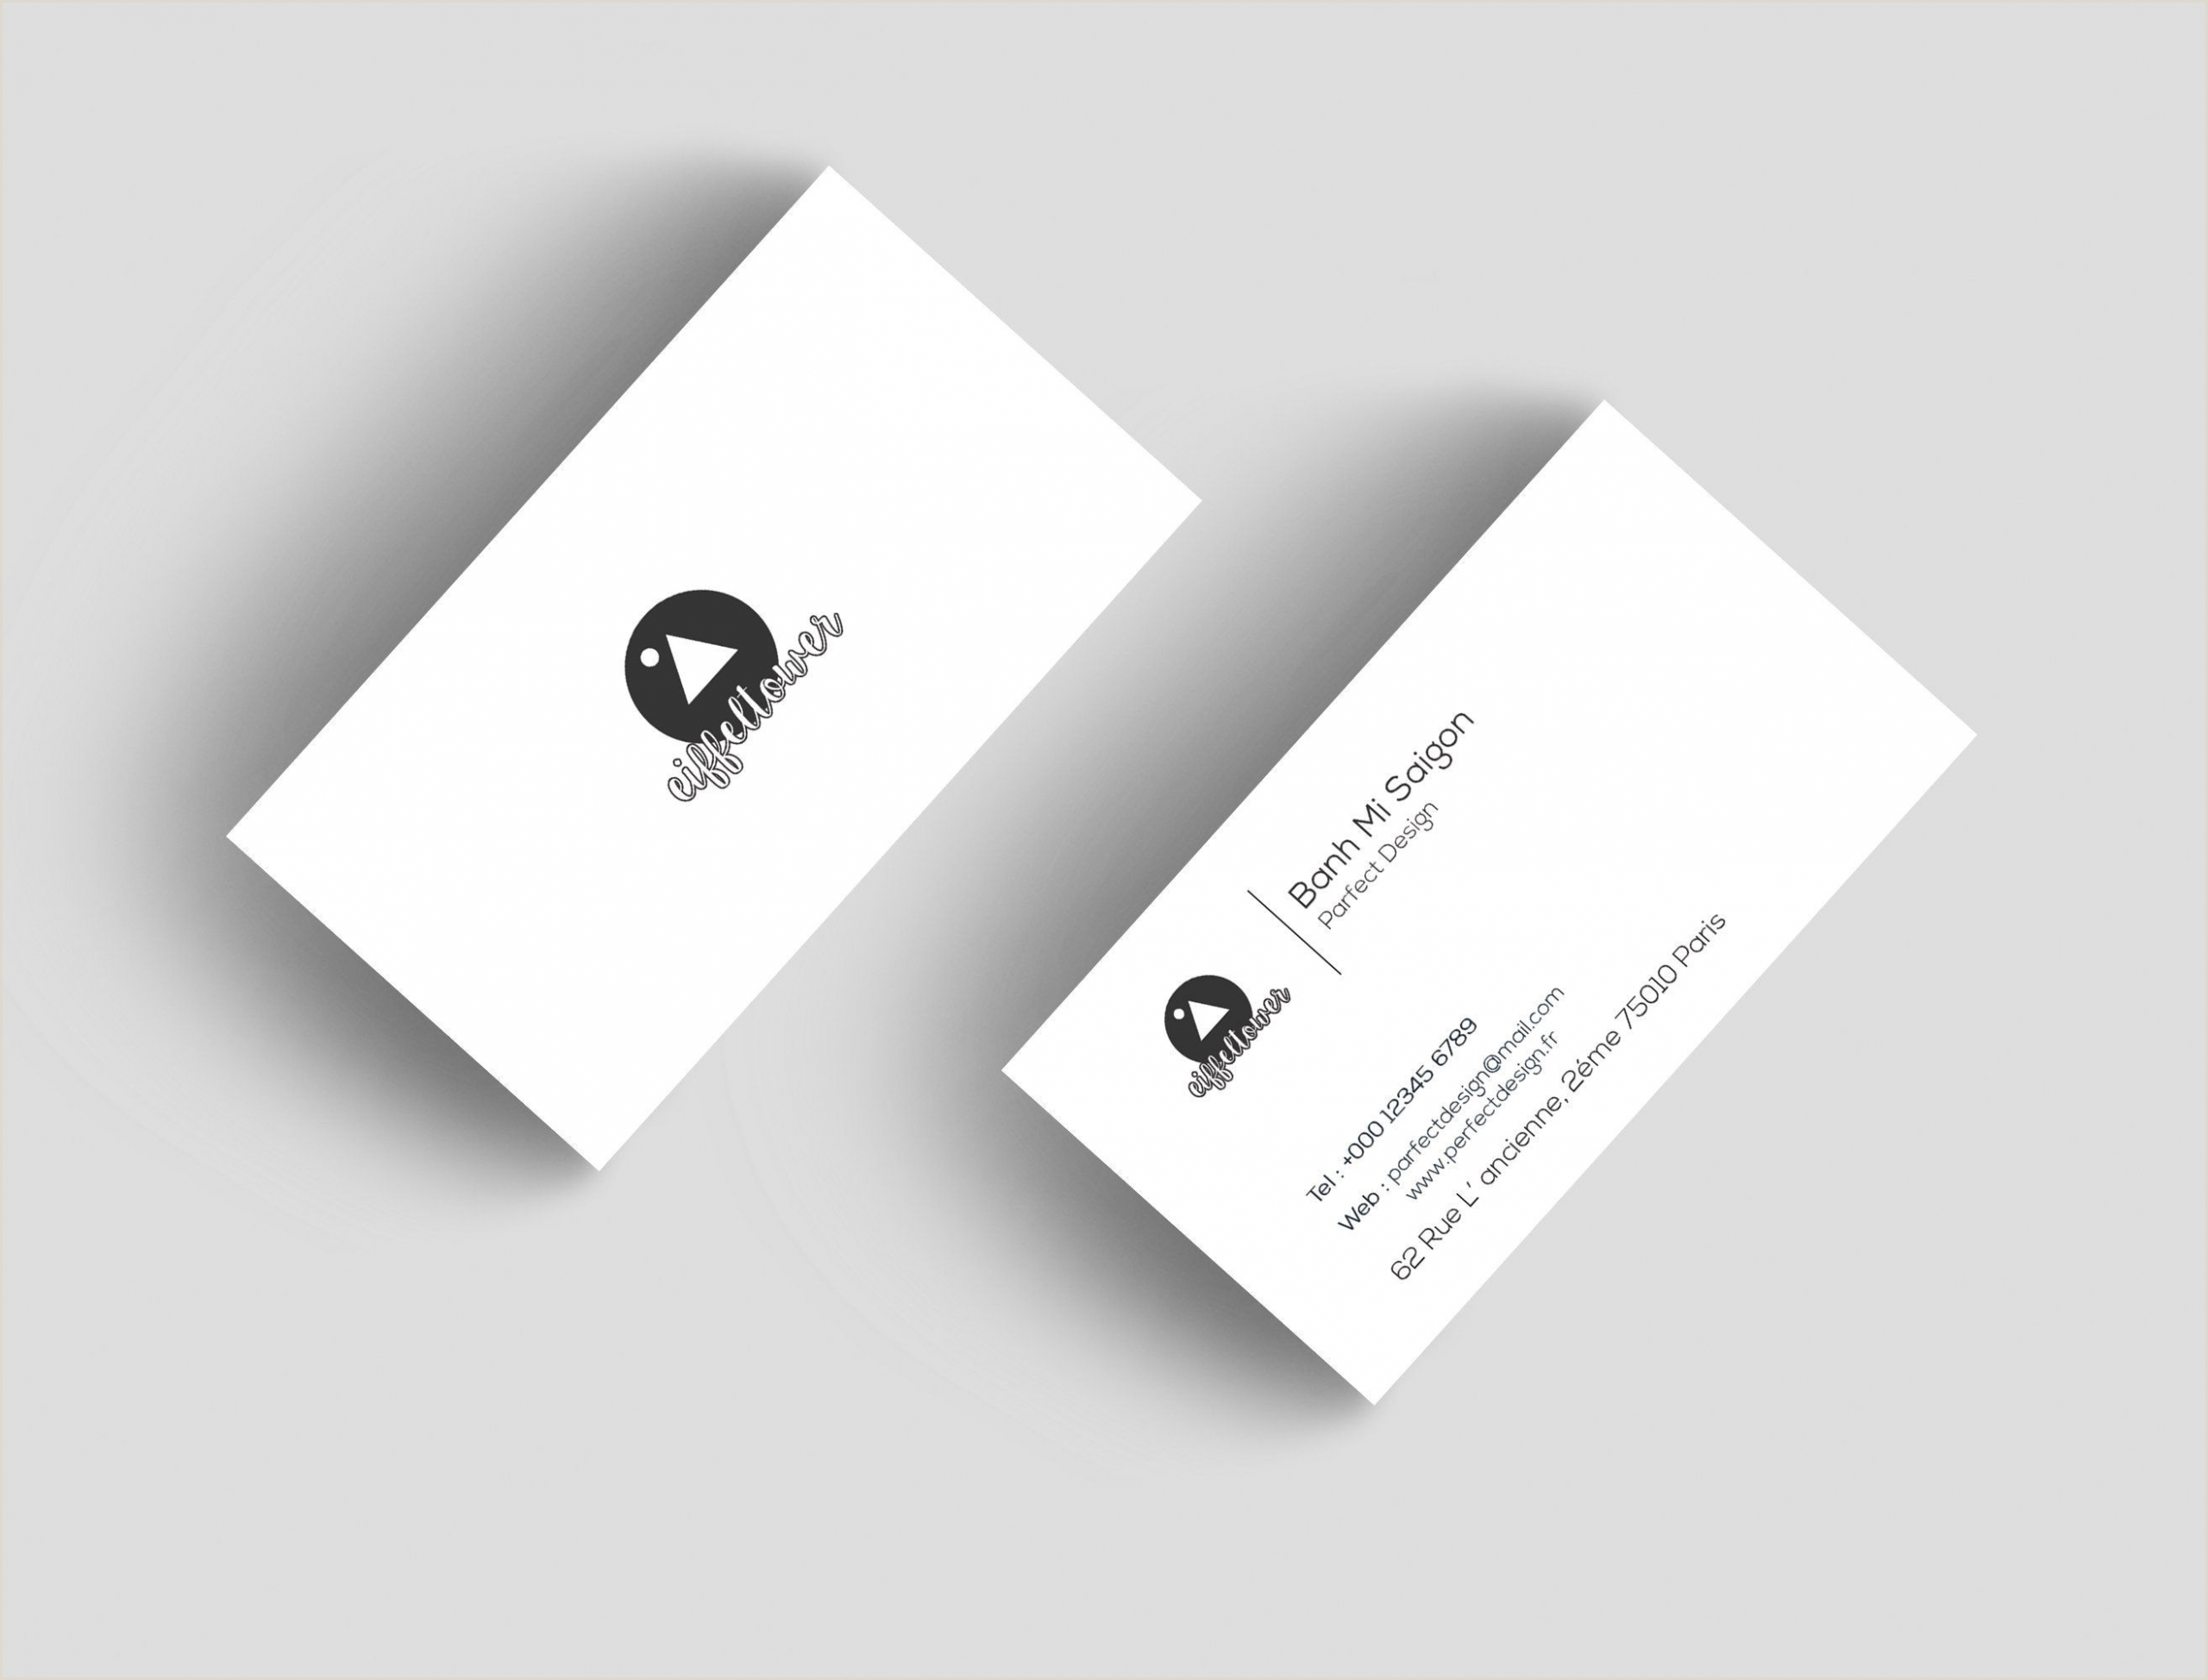 Business Cards With Unique Designs On Each One Business Cards